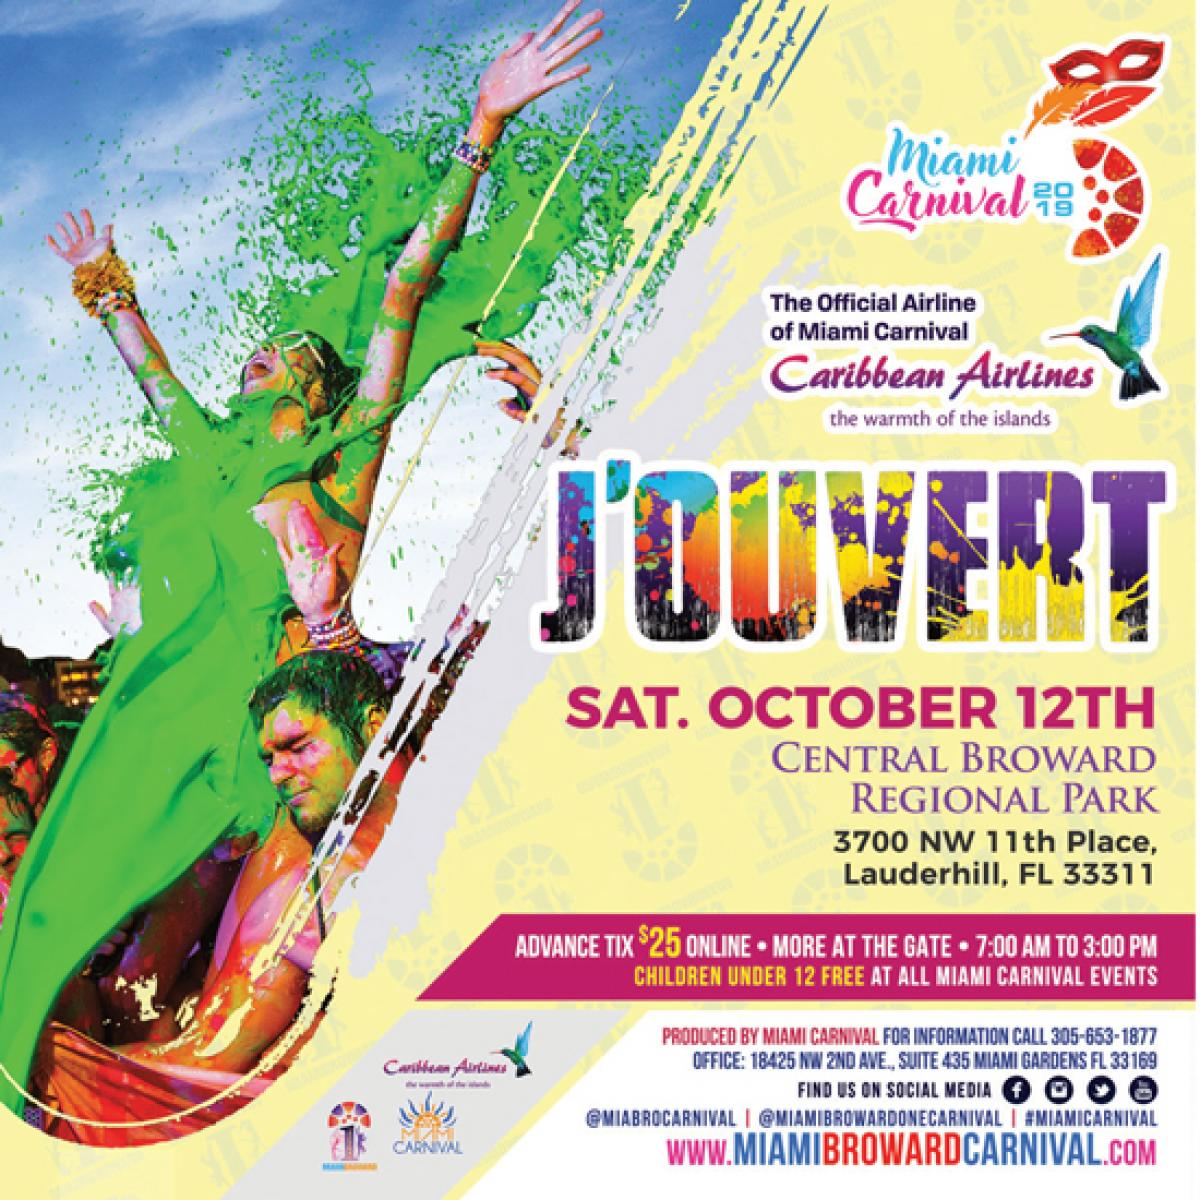 J'ouvert flyer or graphic.